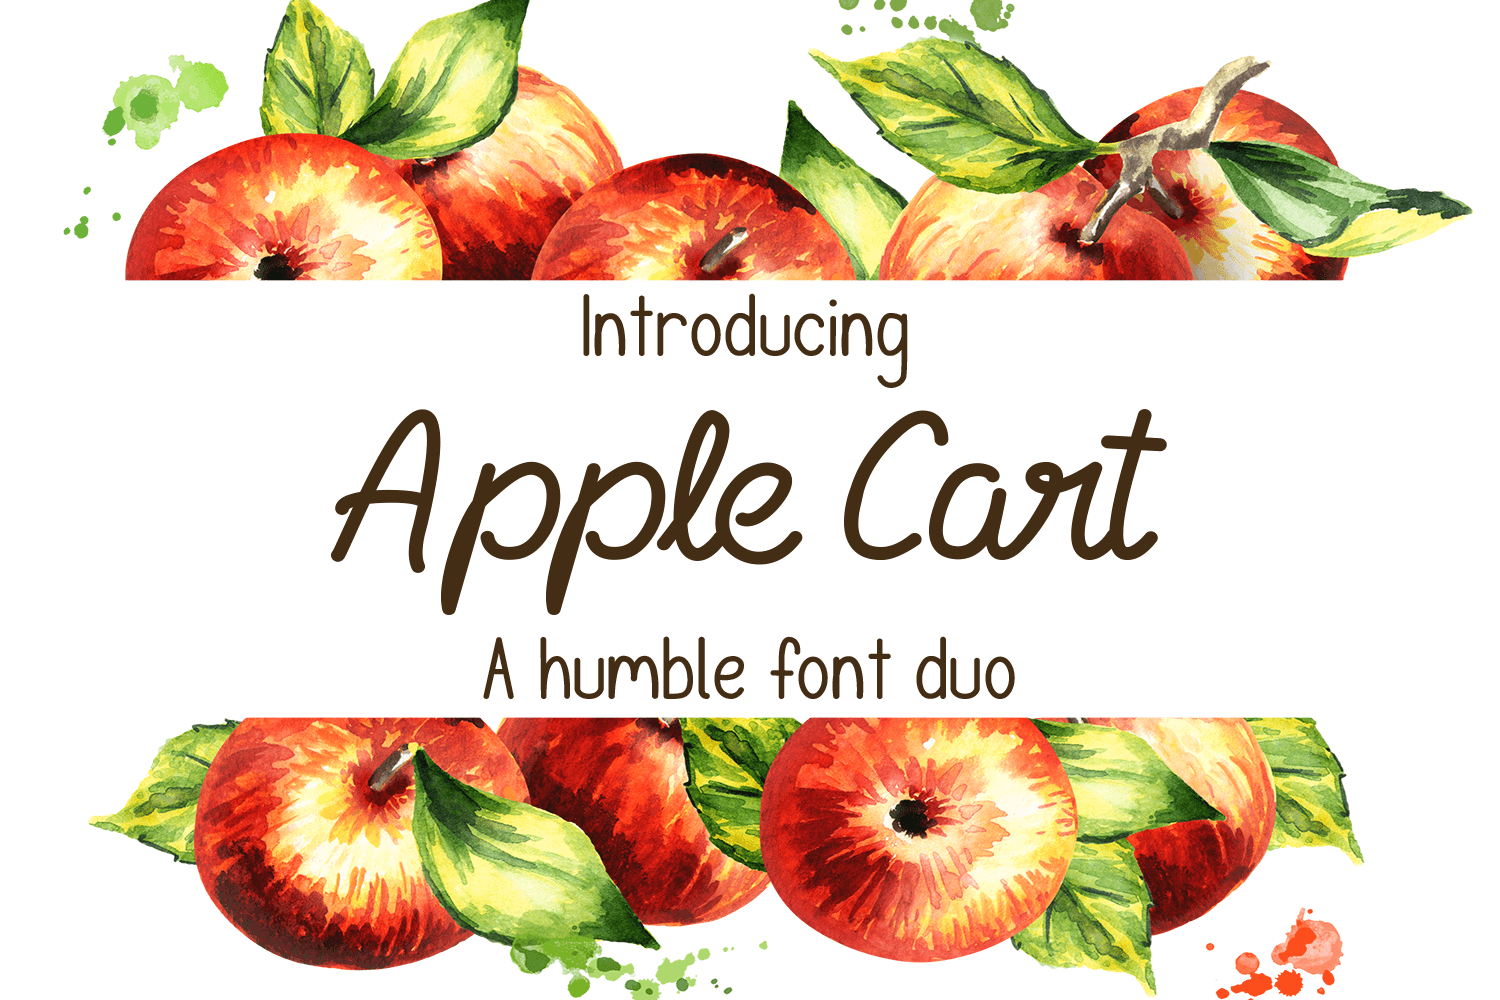 Apple Cart Font Duo example image 1